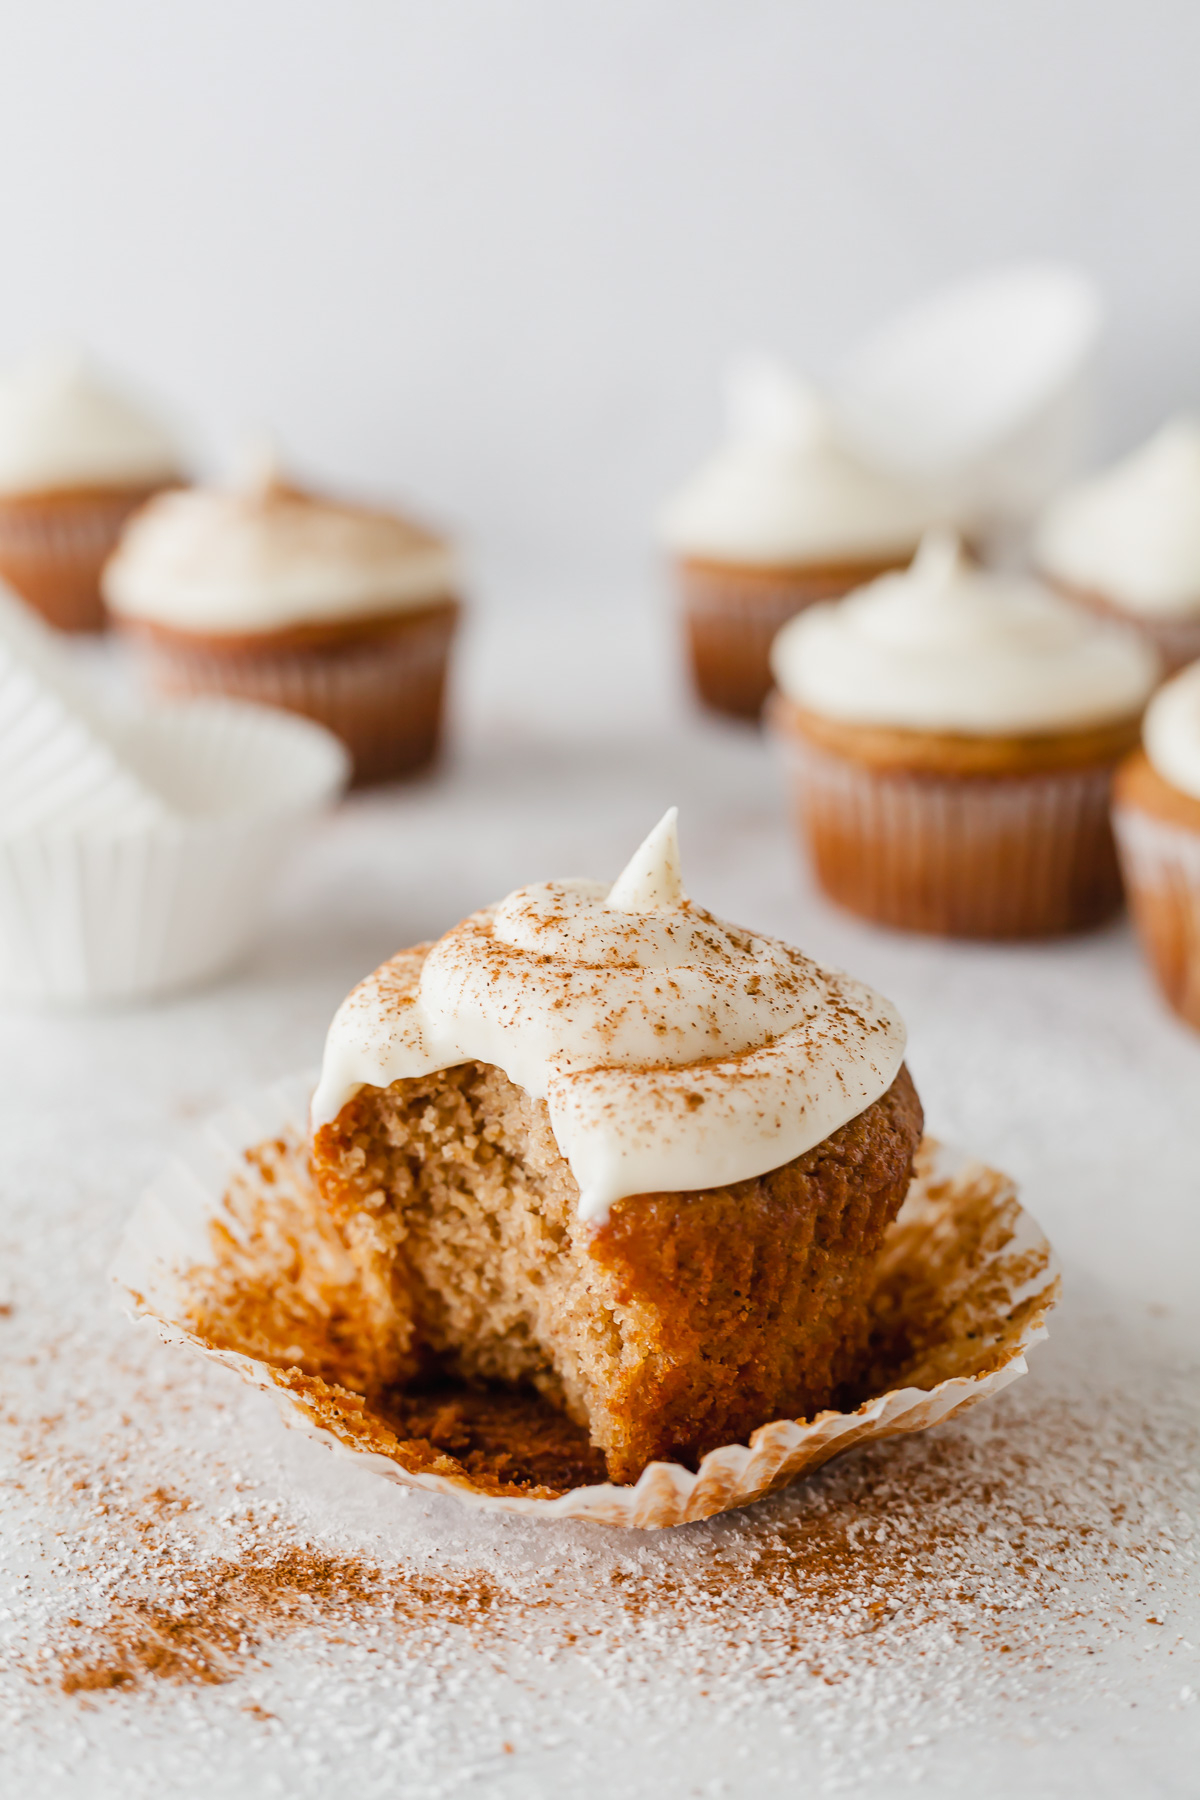 an applesauce spice cupcake sitting on the paper liner with a bite taken out and a few more cupcakes in the background